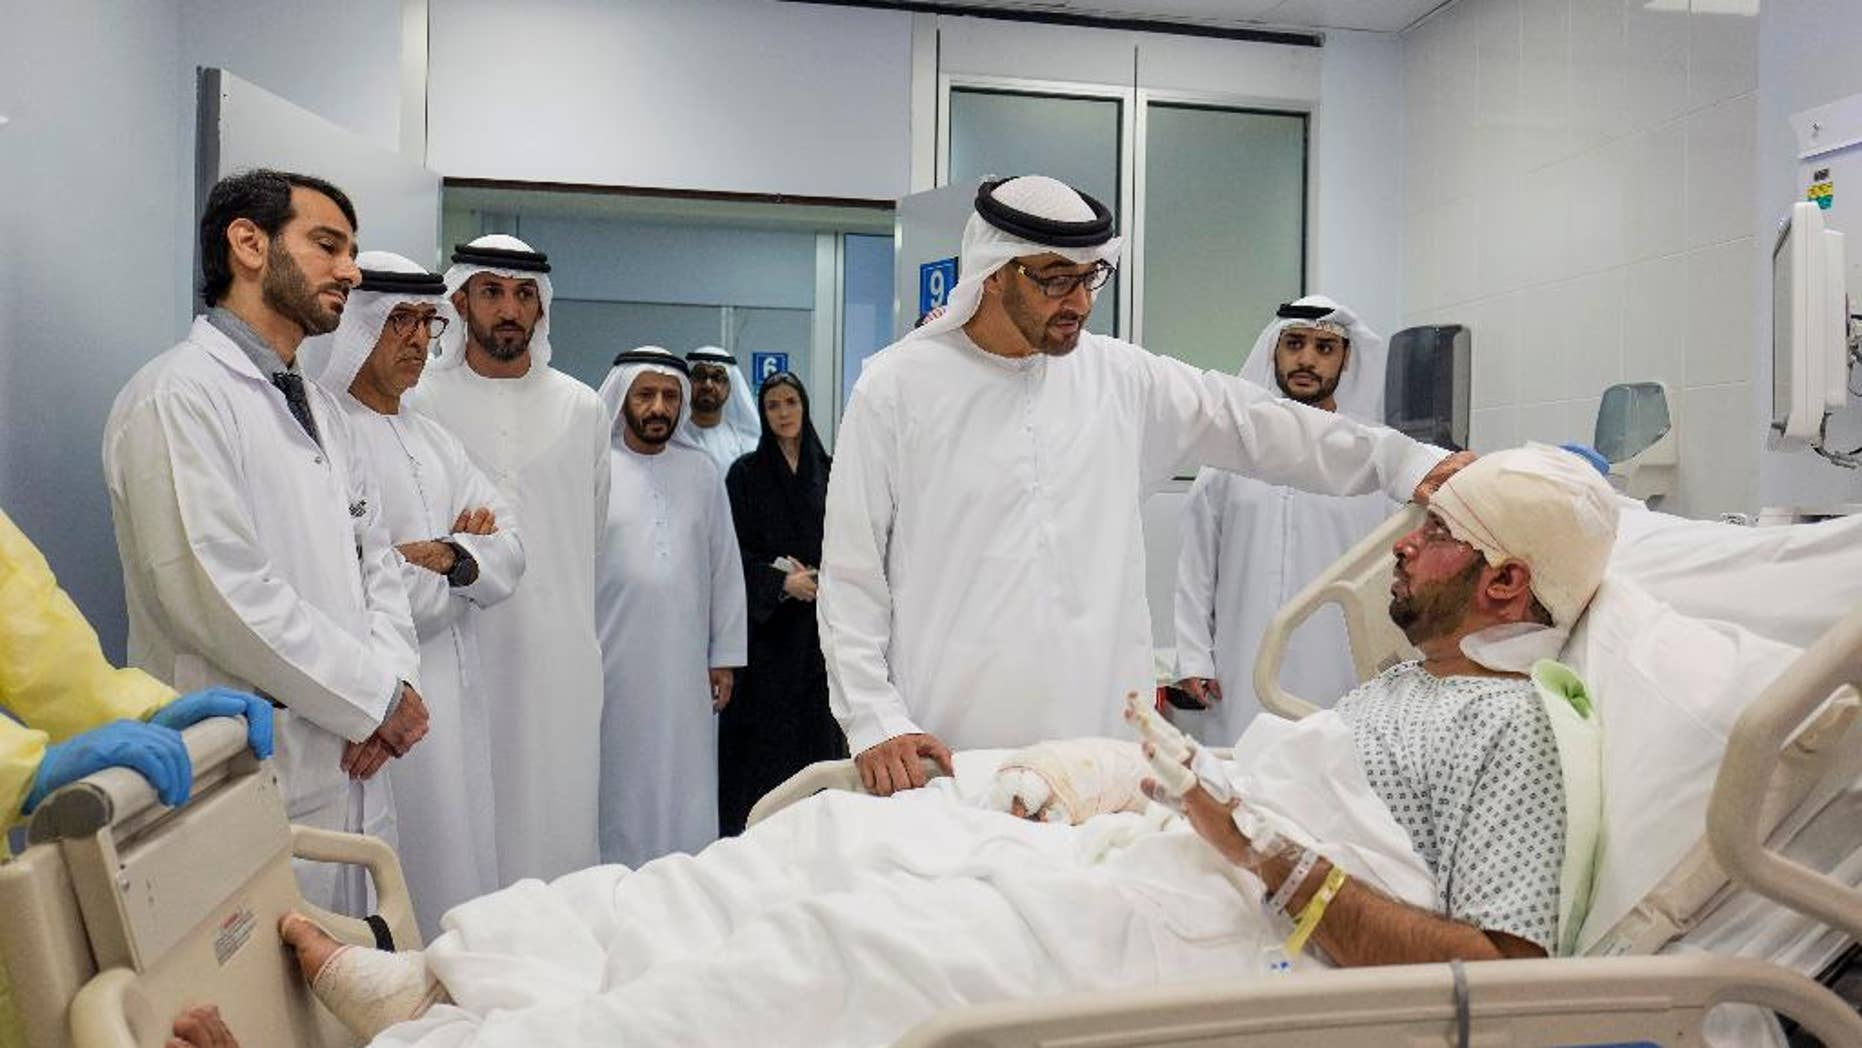 FILE- In this Saturday, Jan. 14, 2017, file photo released by Emirates News Agency, WAM, Sheikh Mohamed bin Zayed Al Nahyan Crown Prince of Abu Dhabi and Deputy Supreme Commander of the UAE Armed Forces, visits Juma Al Kaabi, the UAE Ambassador to Afghanistan, who was injured in the Kandahar terrorist attack at Al Mafraq hospital in Abu Dhabi, United Arab Emirates. The United Arab Emirates says its ambassador to Afghanistan has died after sustaining injuries in the January bombing that claimed the lives of five of his compatriots.(Crown Prince Court via AP)